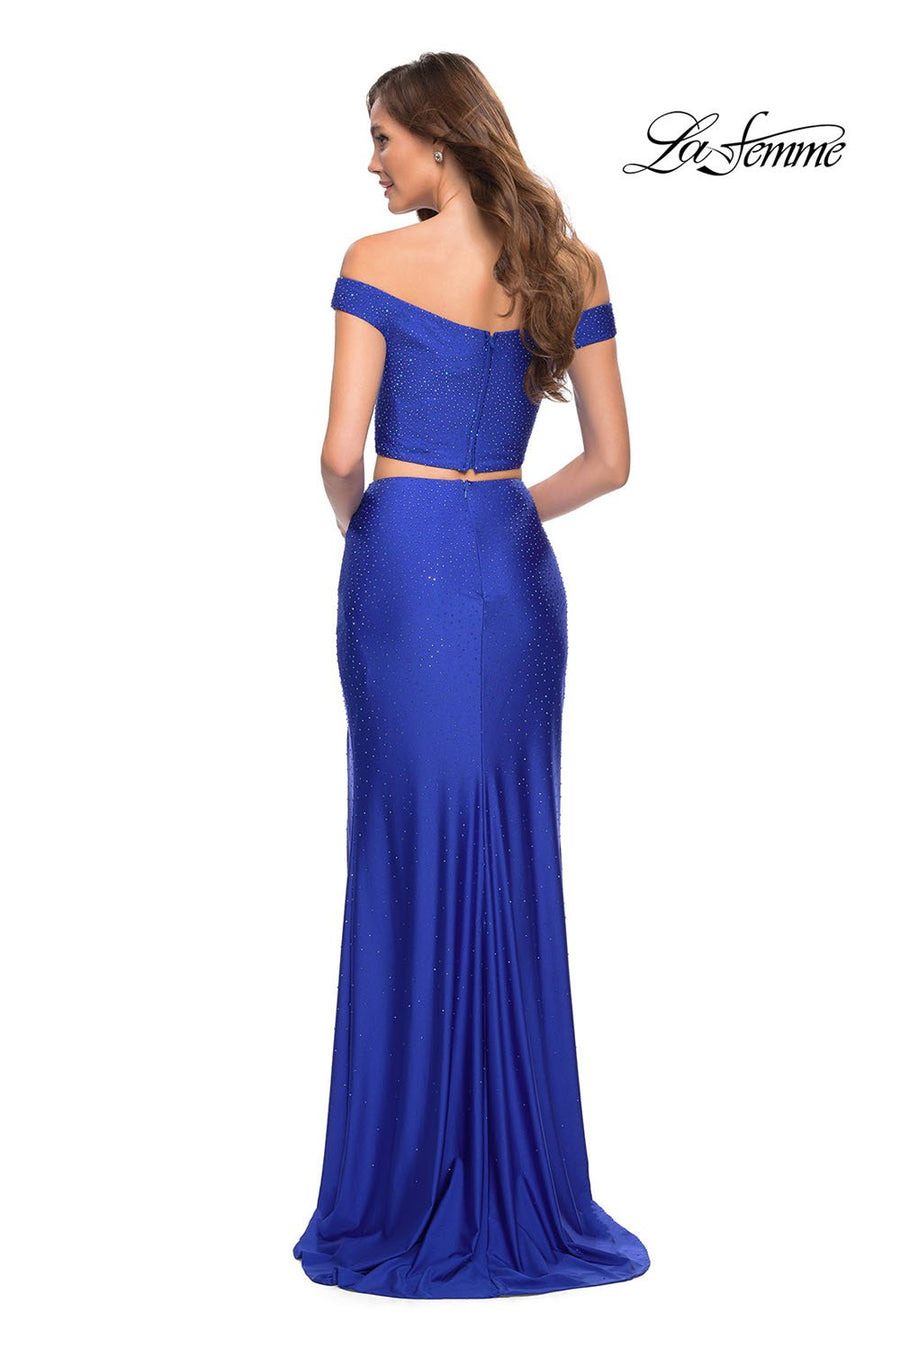 La Femme 29951 prom dress images.  La Femme 29951 is available in these colors: Dark Berry, Pale Yellow, Royal Blue.